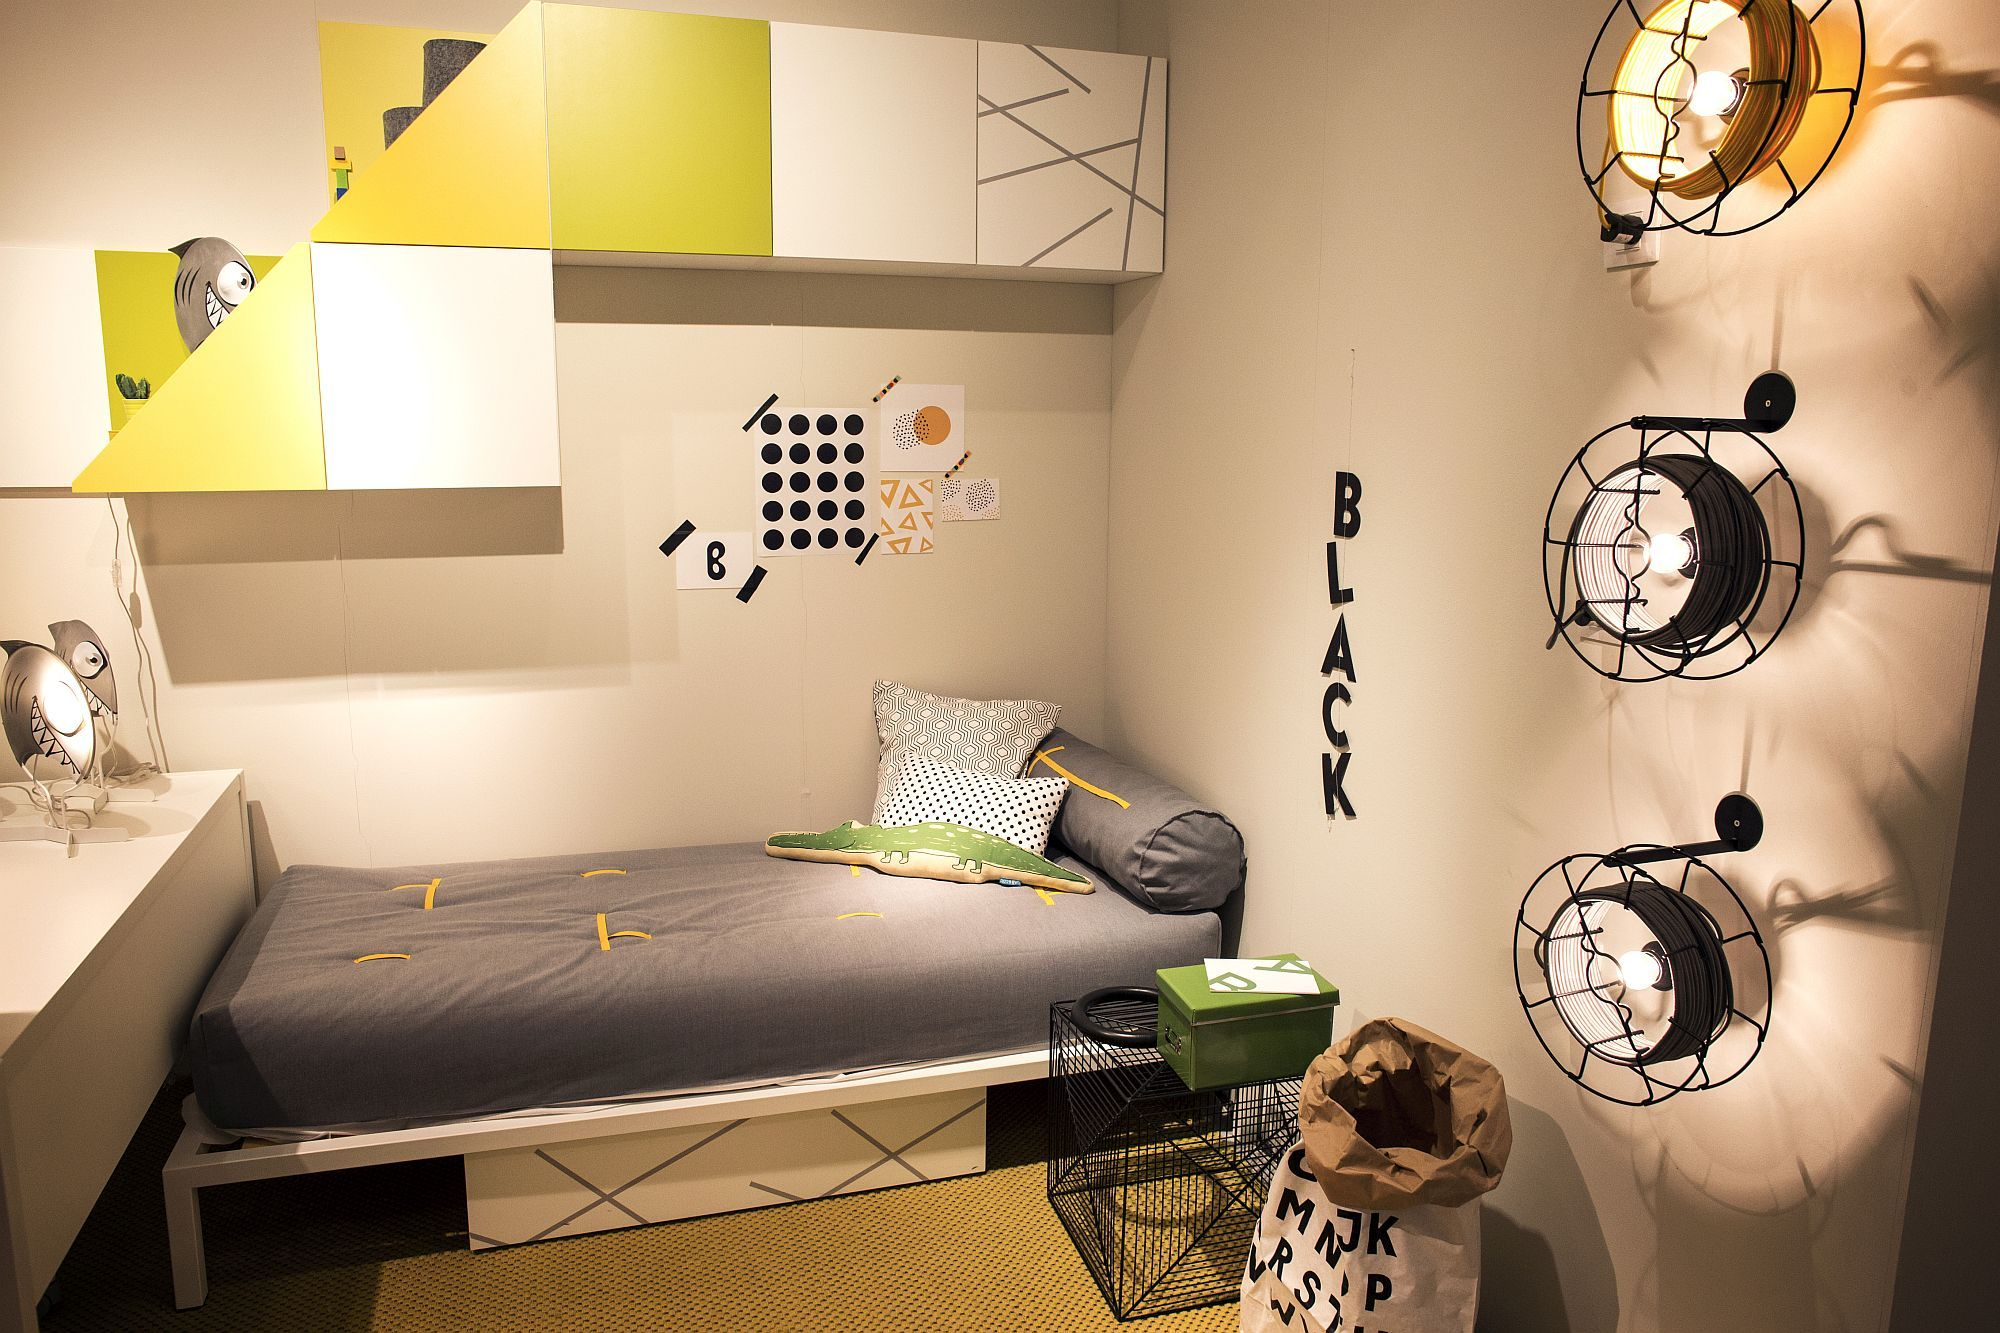 50 Latest Kids' Bedroom Decorating and Furniture Ideas is part of Tiny Kids bedroom - Decorating a beautiful kid's room presents its own set of unique challenges that are completely different from planning for an adult bedroom  Gone are the days when you just threw the kids in a room and asked them to bunk together while sorting out the other details all on their own! (And if you were […]